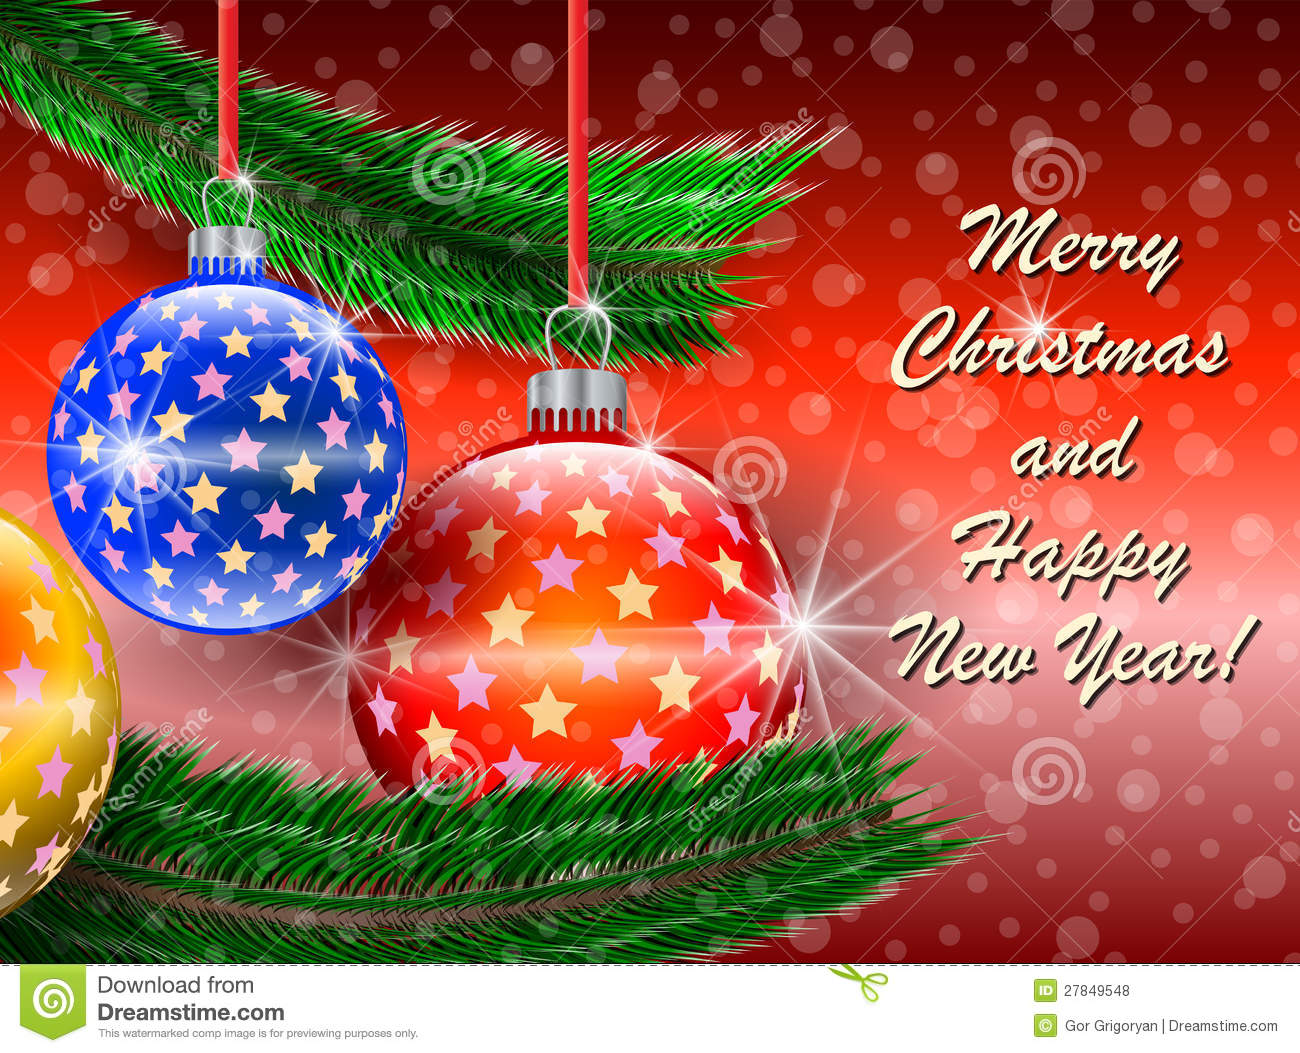 Merry Christmas And Happy New Year Greetings Card Stock Vector ...